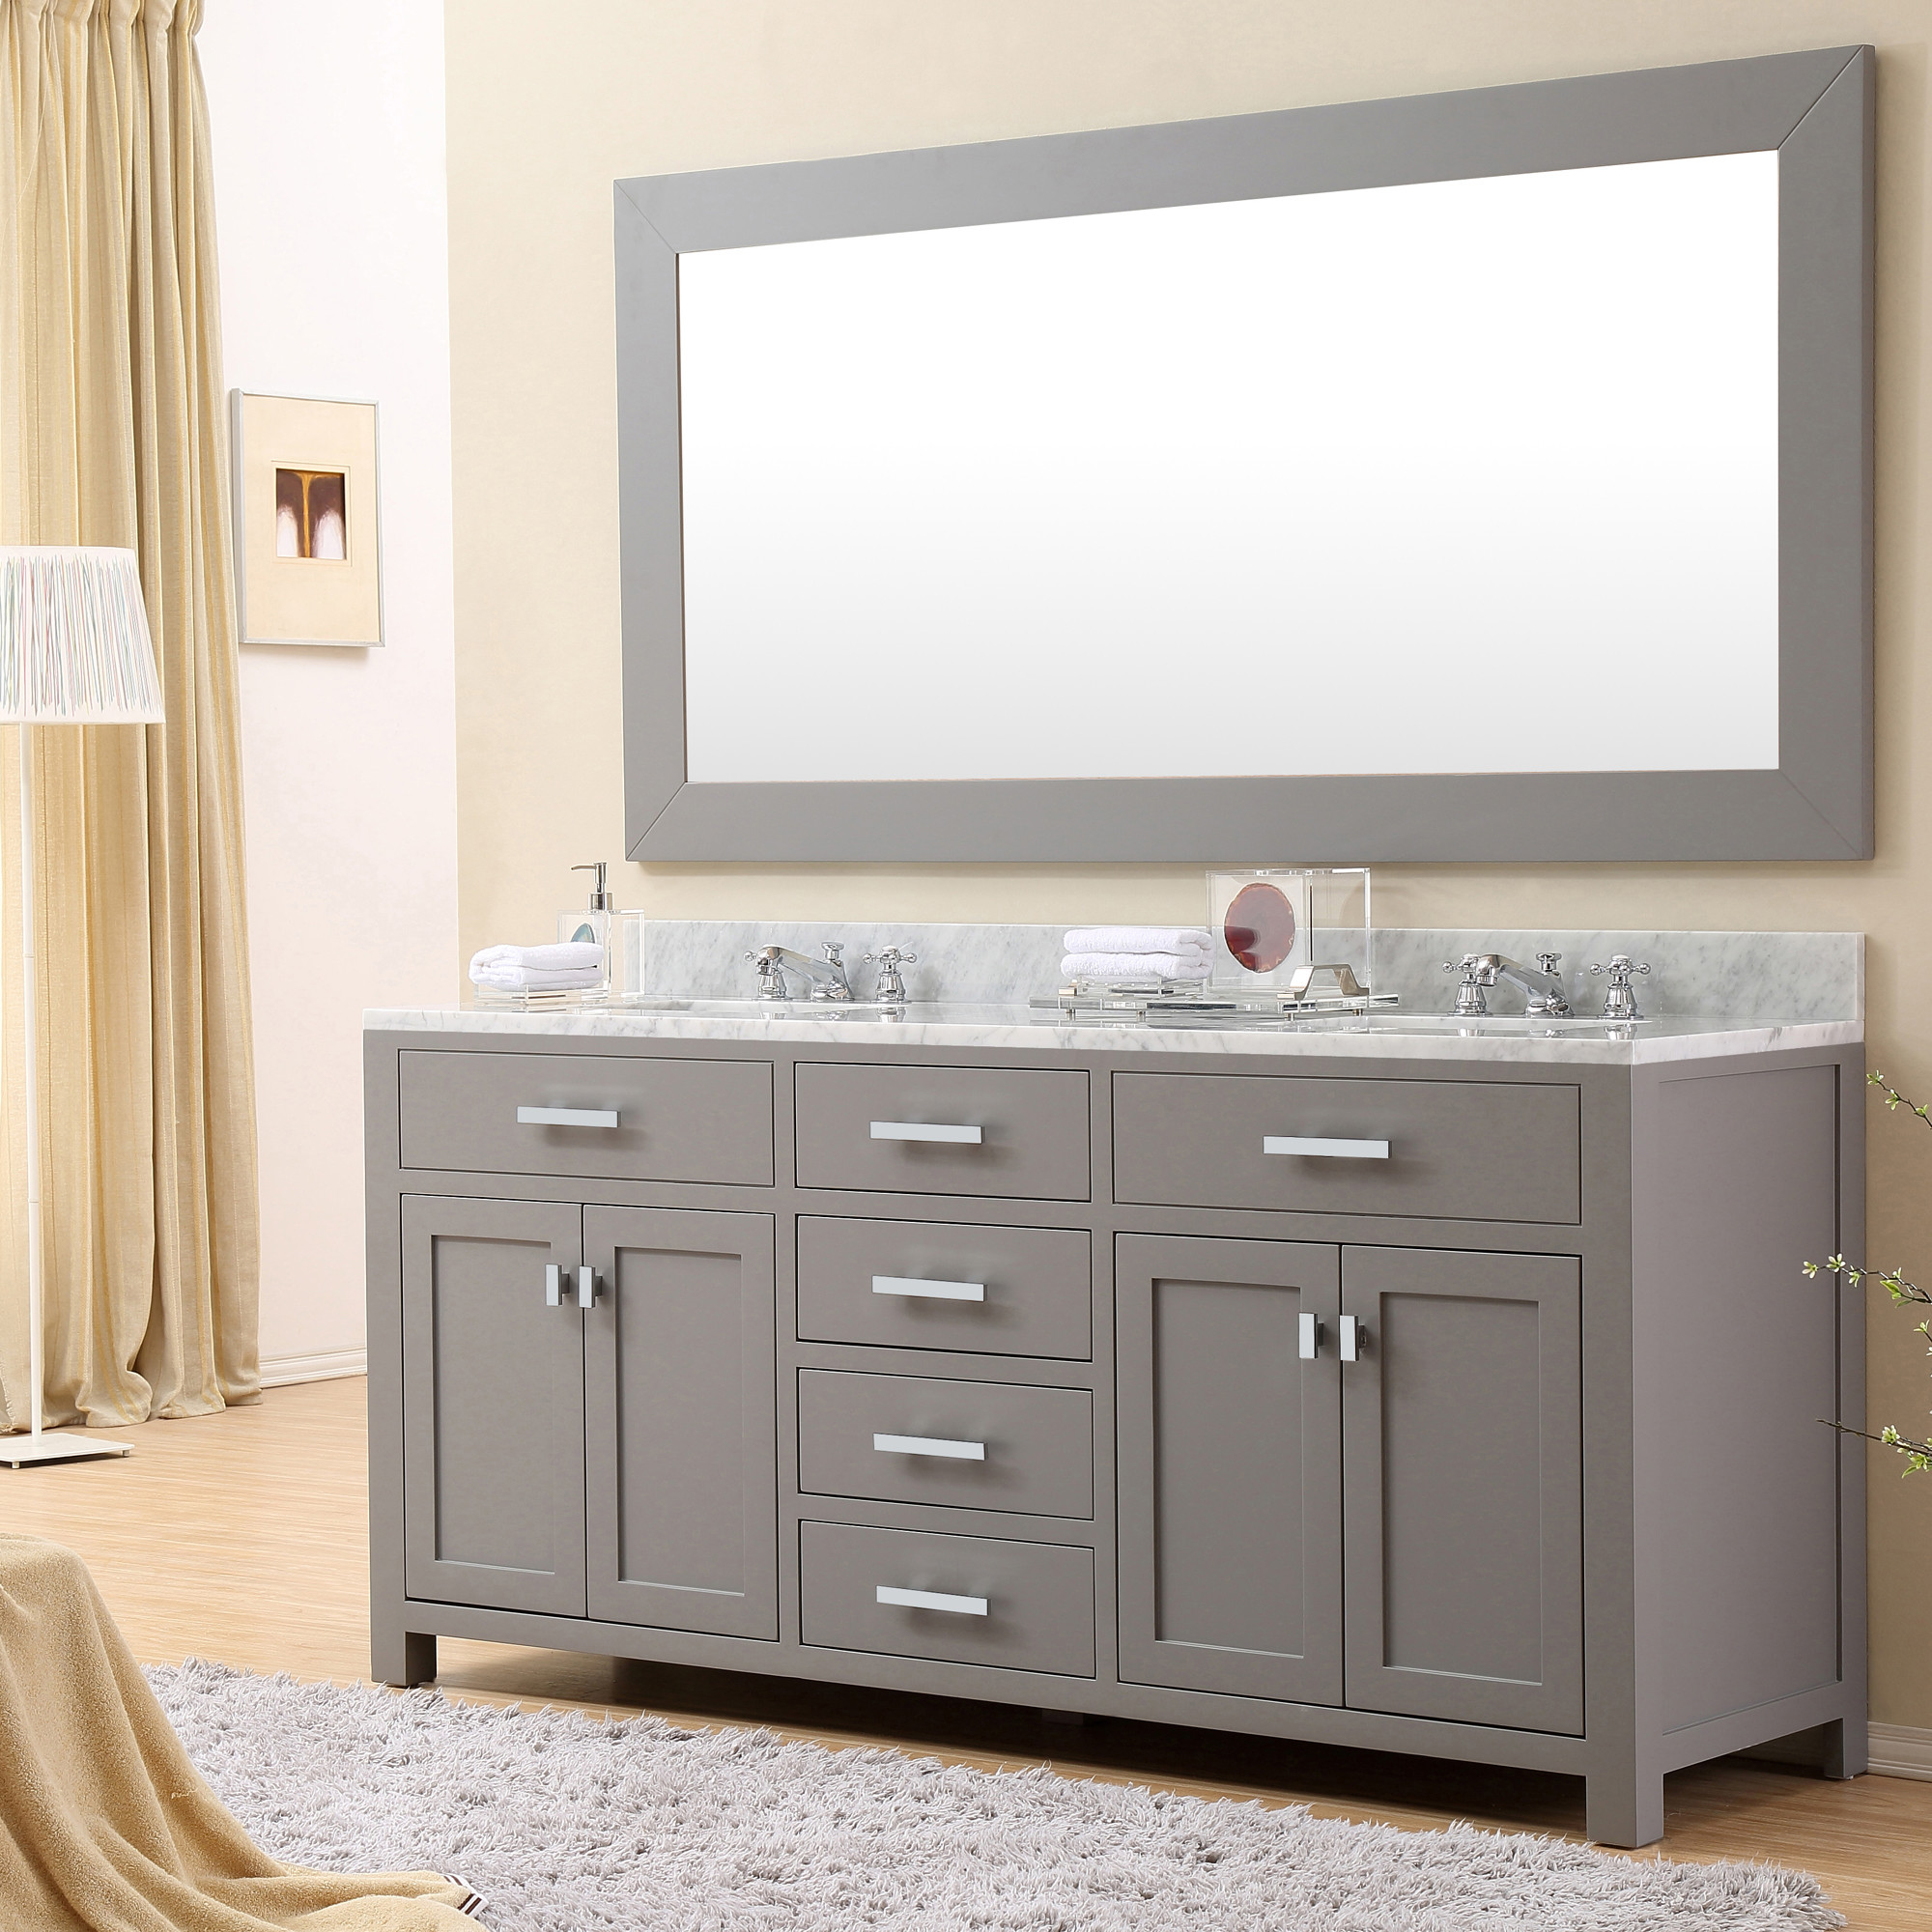 rustic bathroom canada en vanities vanity more the modern categories large home depot with bath